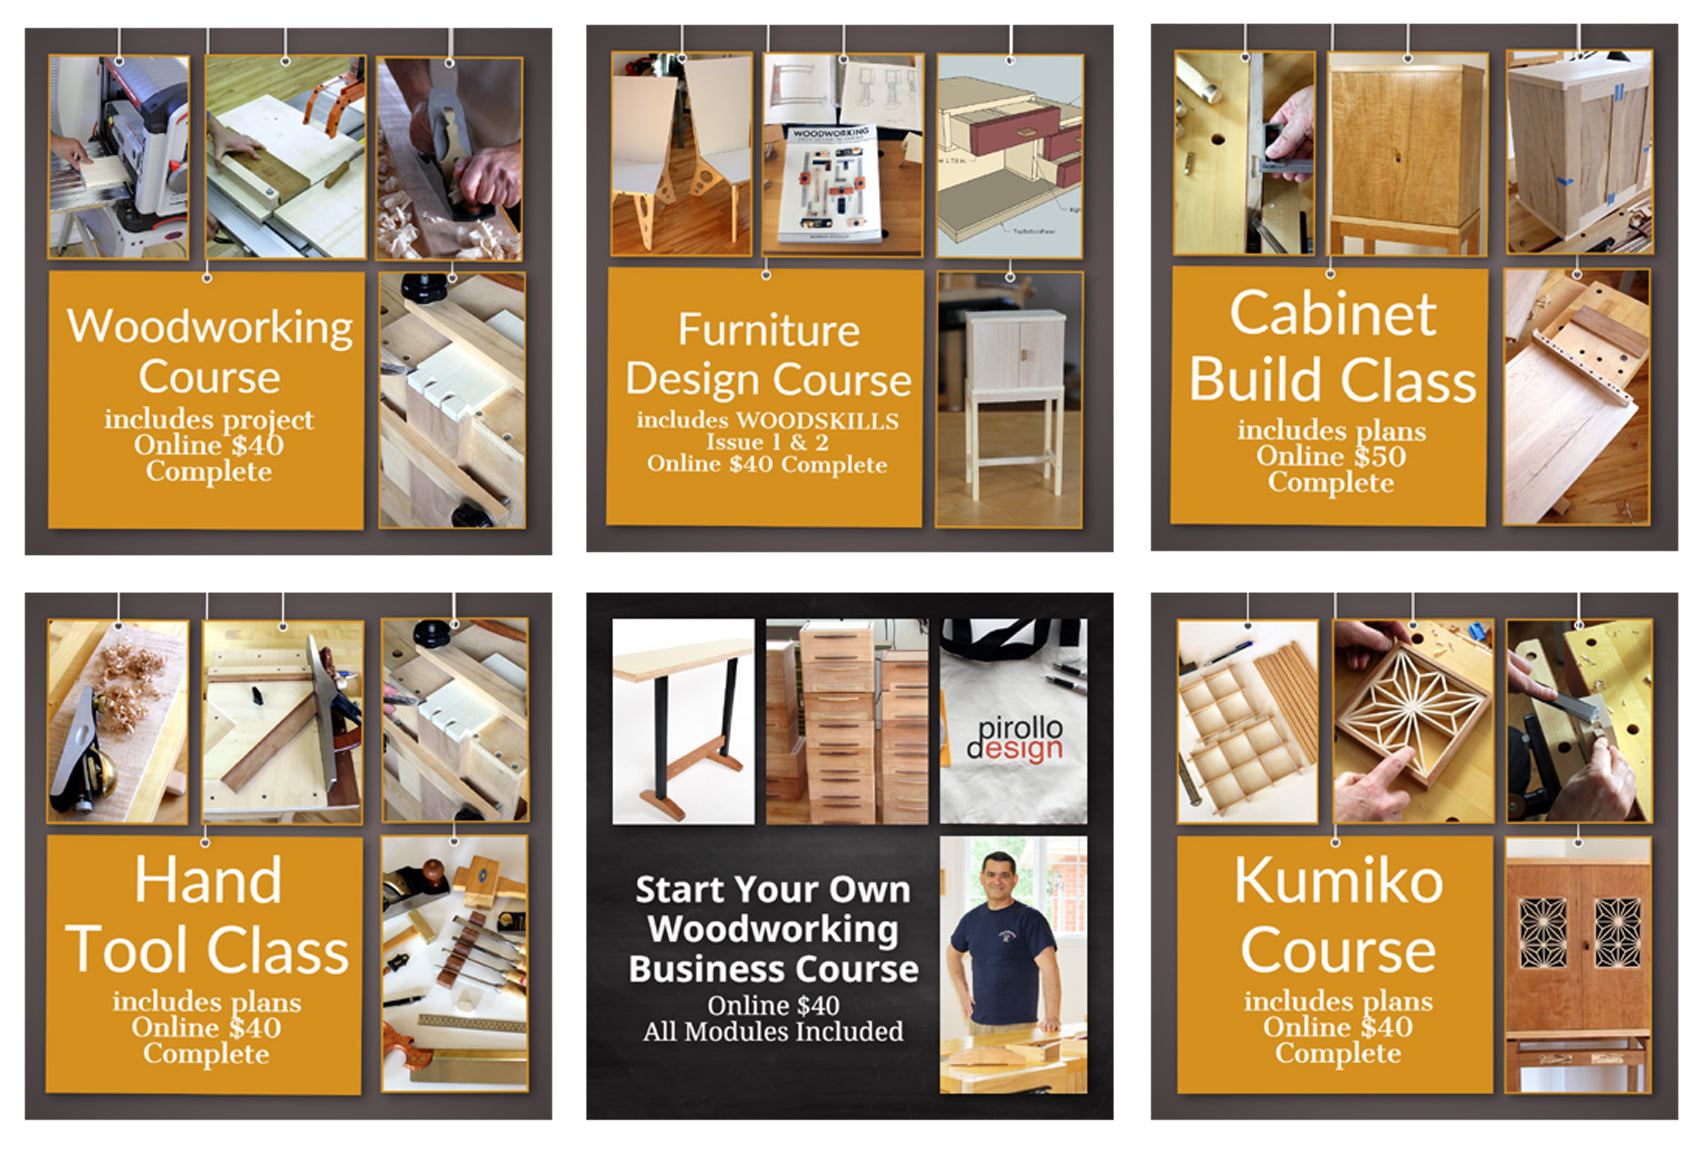 Online Virtual Woodworking Classes